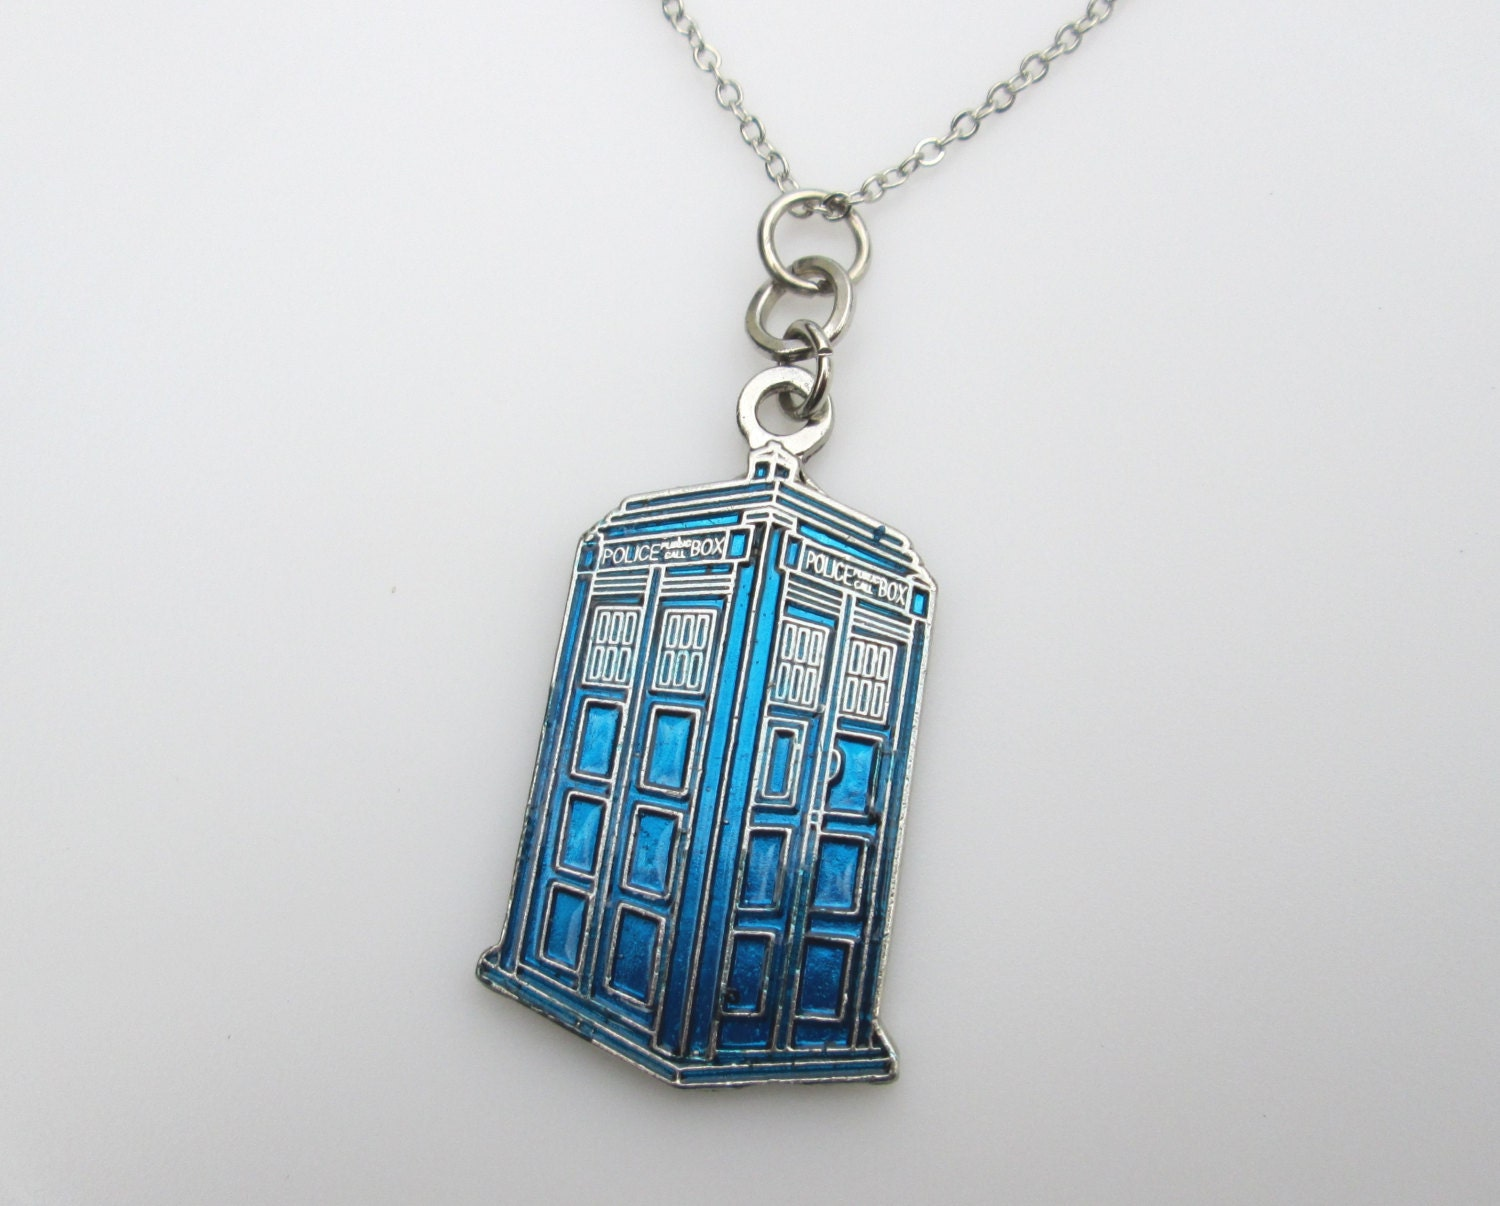 tardis necklace blue tardis pendant doctor who by luckysparks